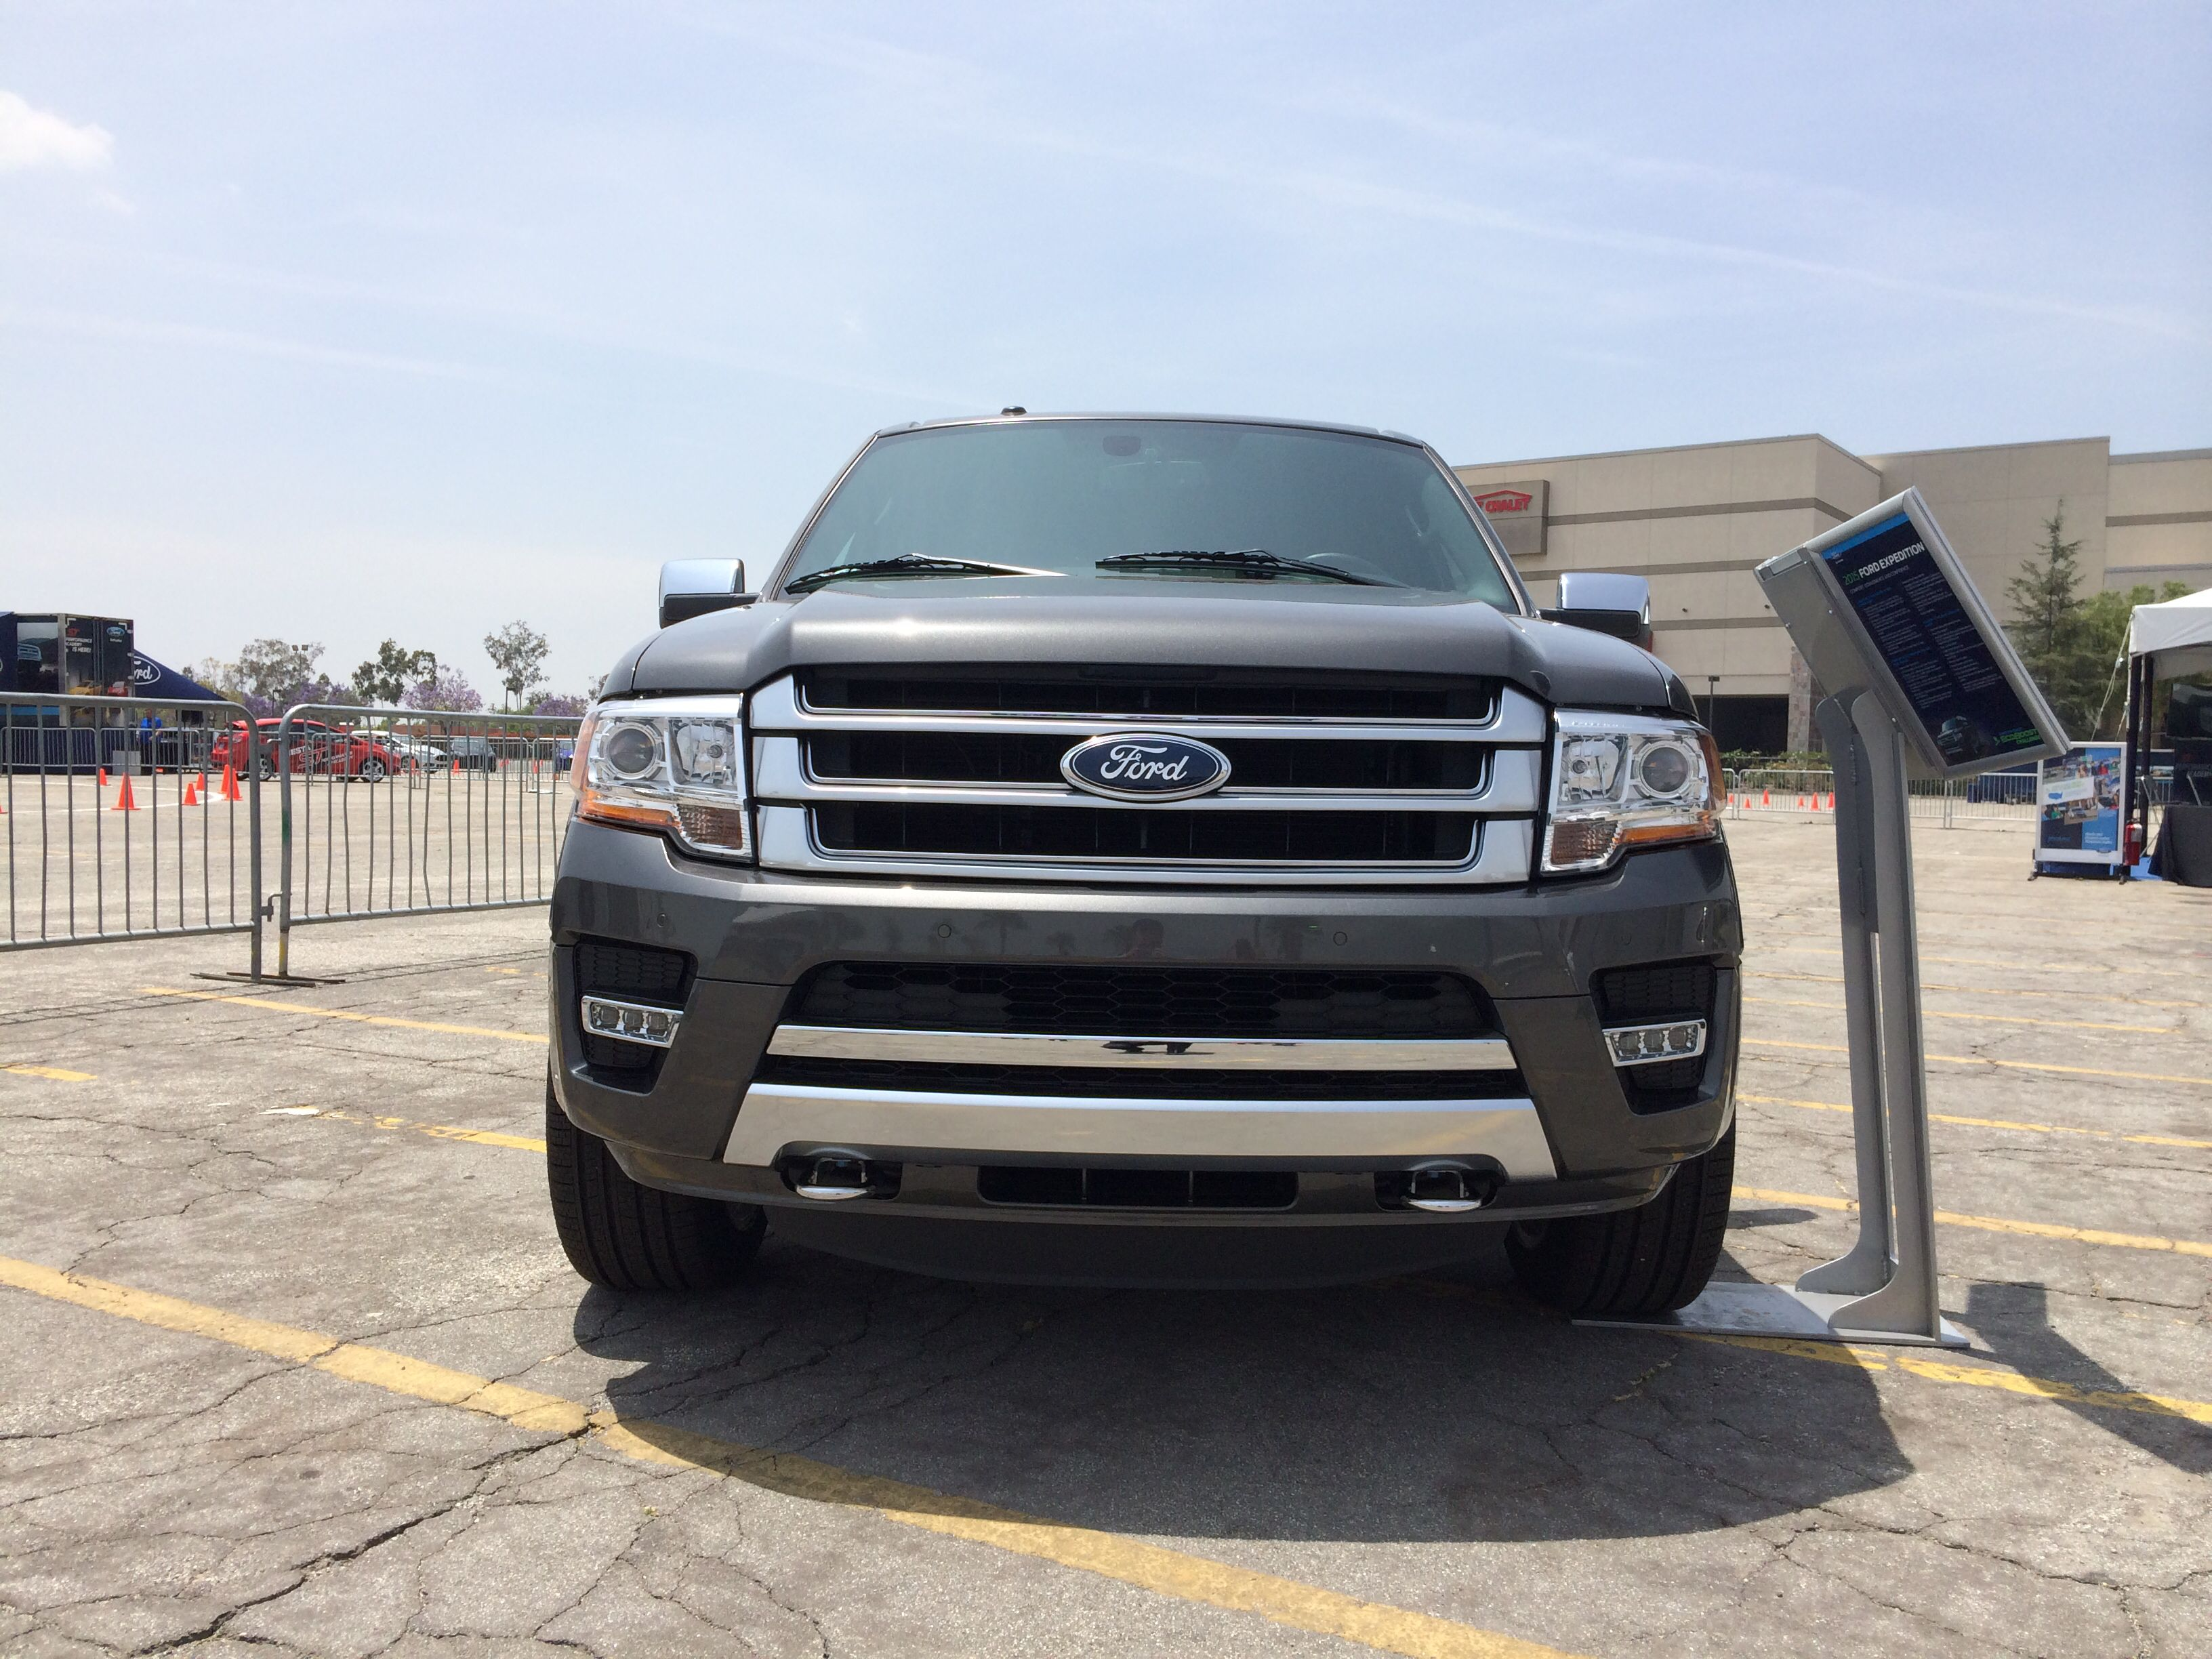 2015 expedition ford expedition expedition full